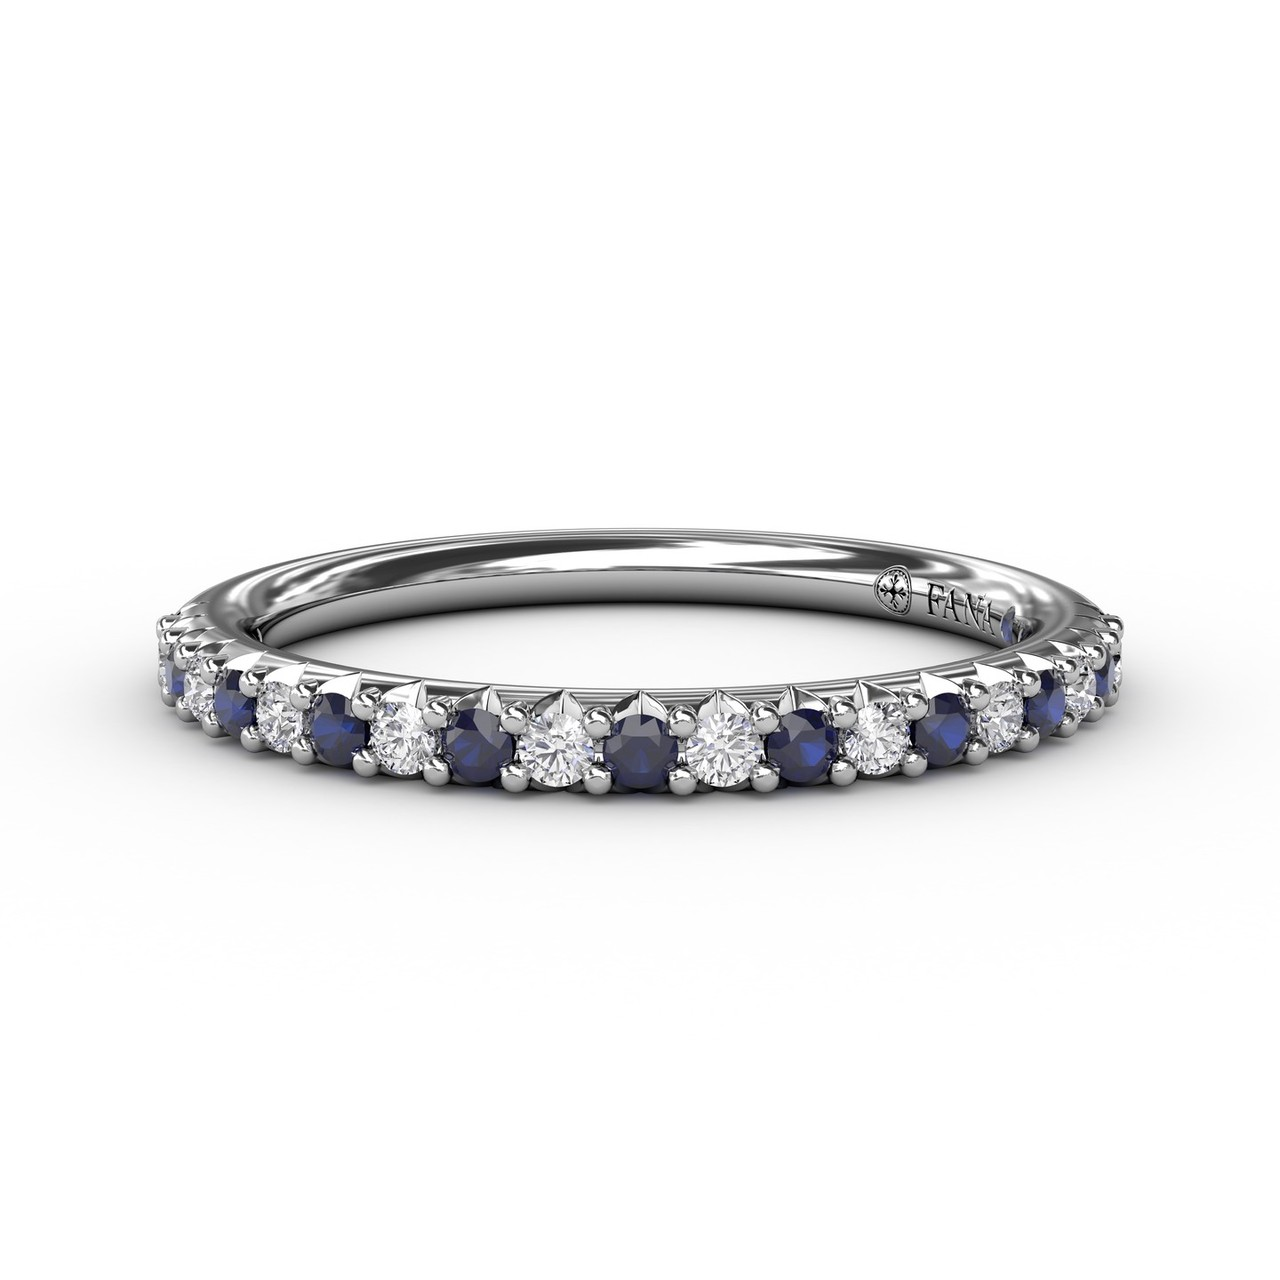 Delicate Sapphire Shared Prong Anniversary Band